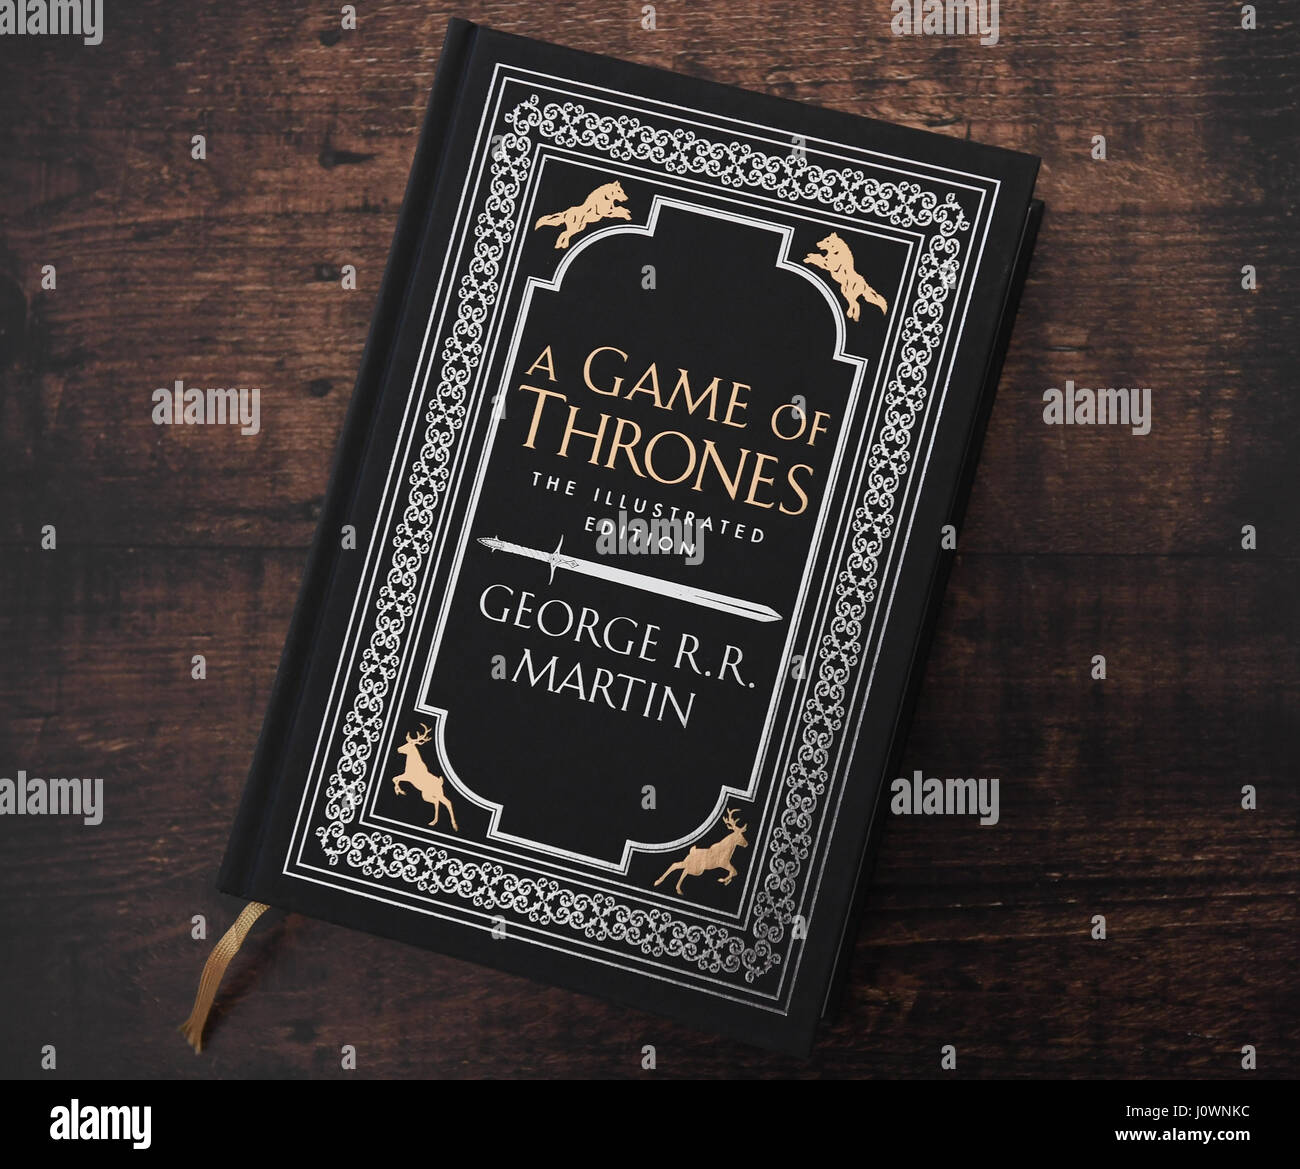 A Game of Thrones book one a wooden table, from the series a